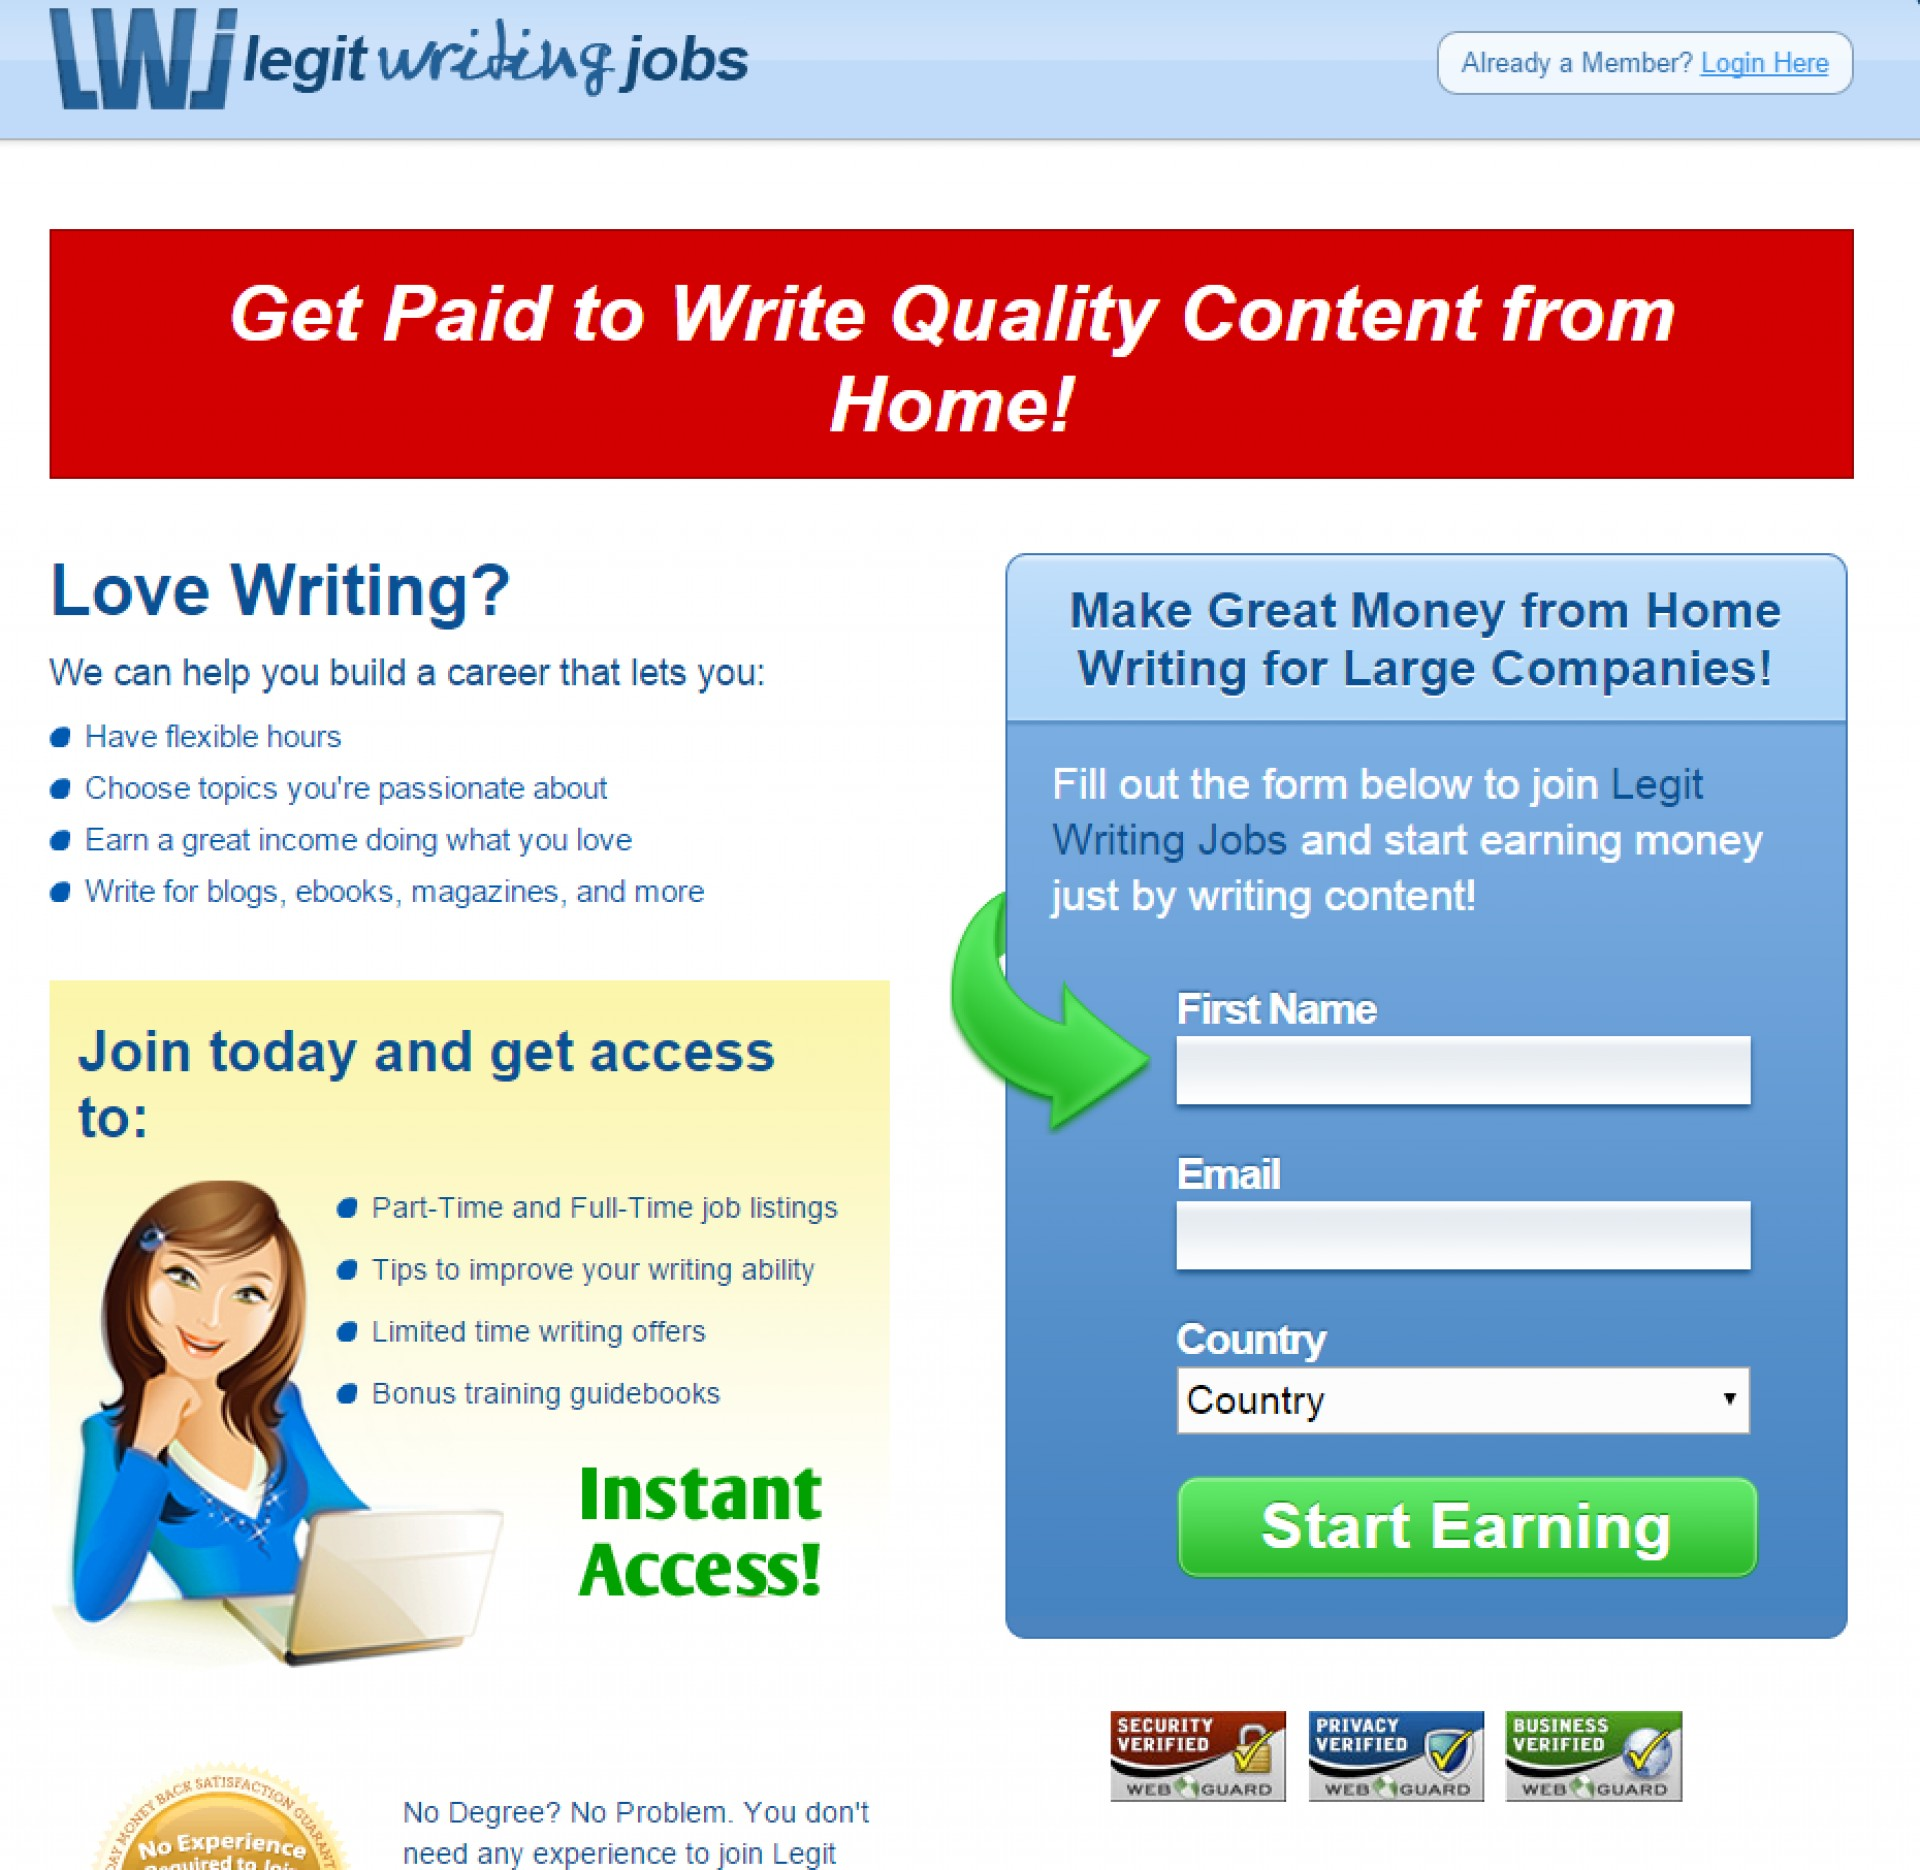 014 Legit Writing Jobs Get Paid To Write Essays Essay Rare Personal College How Much Do You 1920